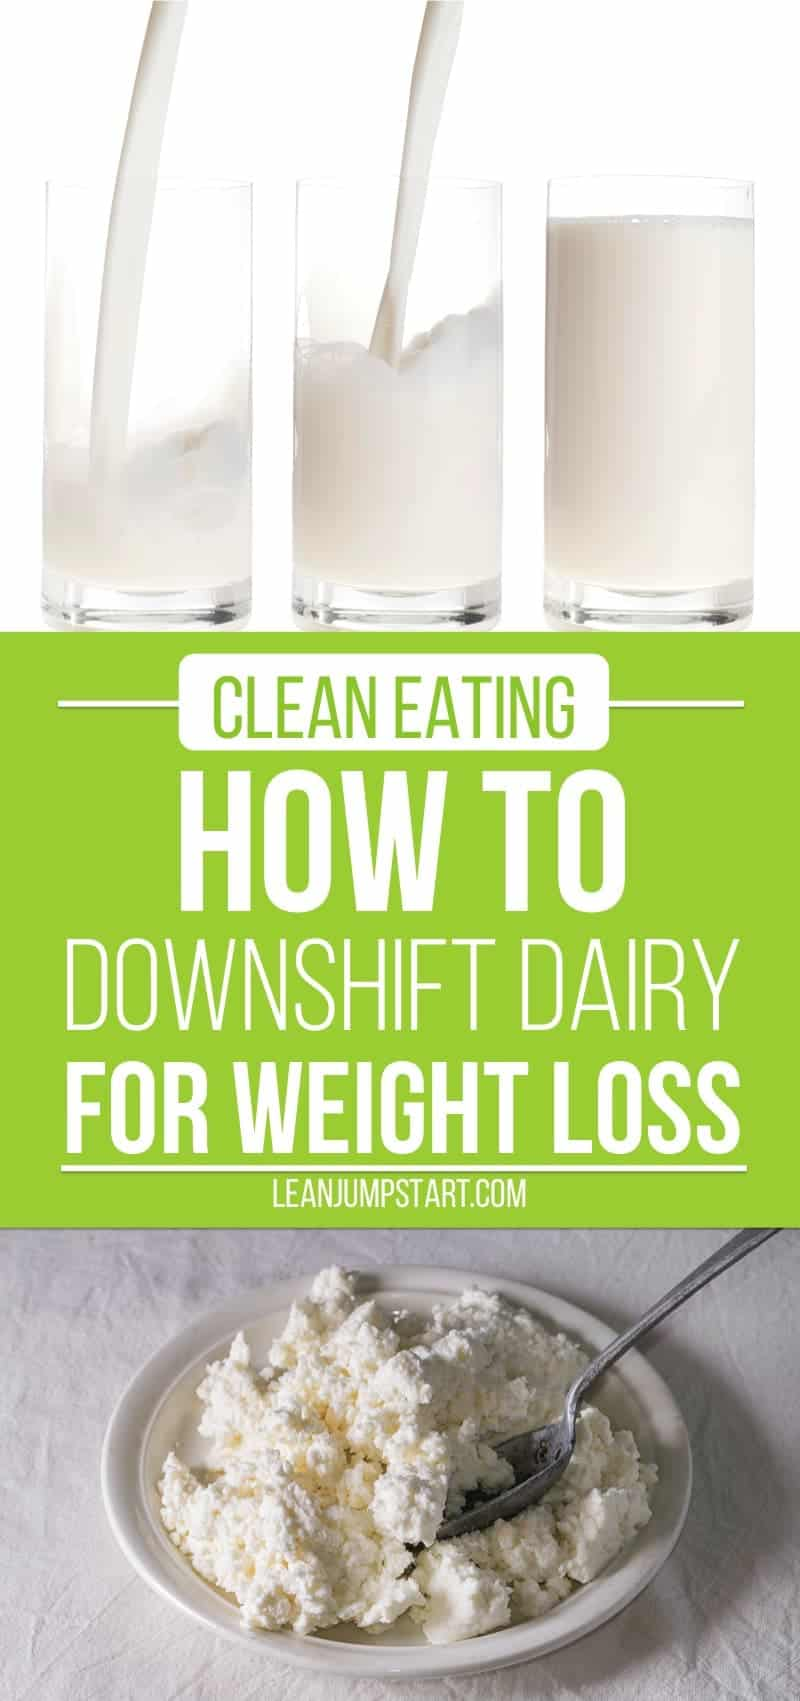 downshift dairy for weight loss